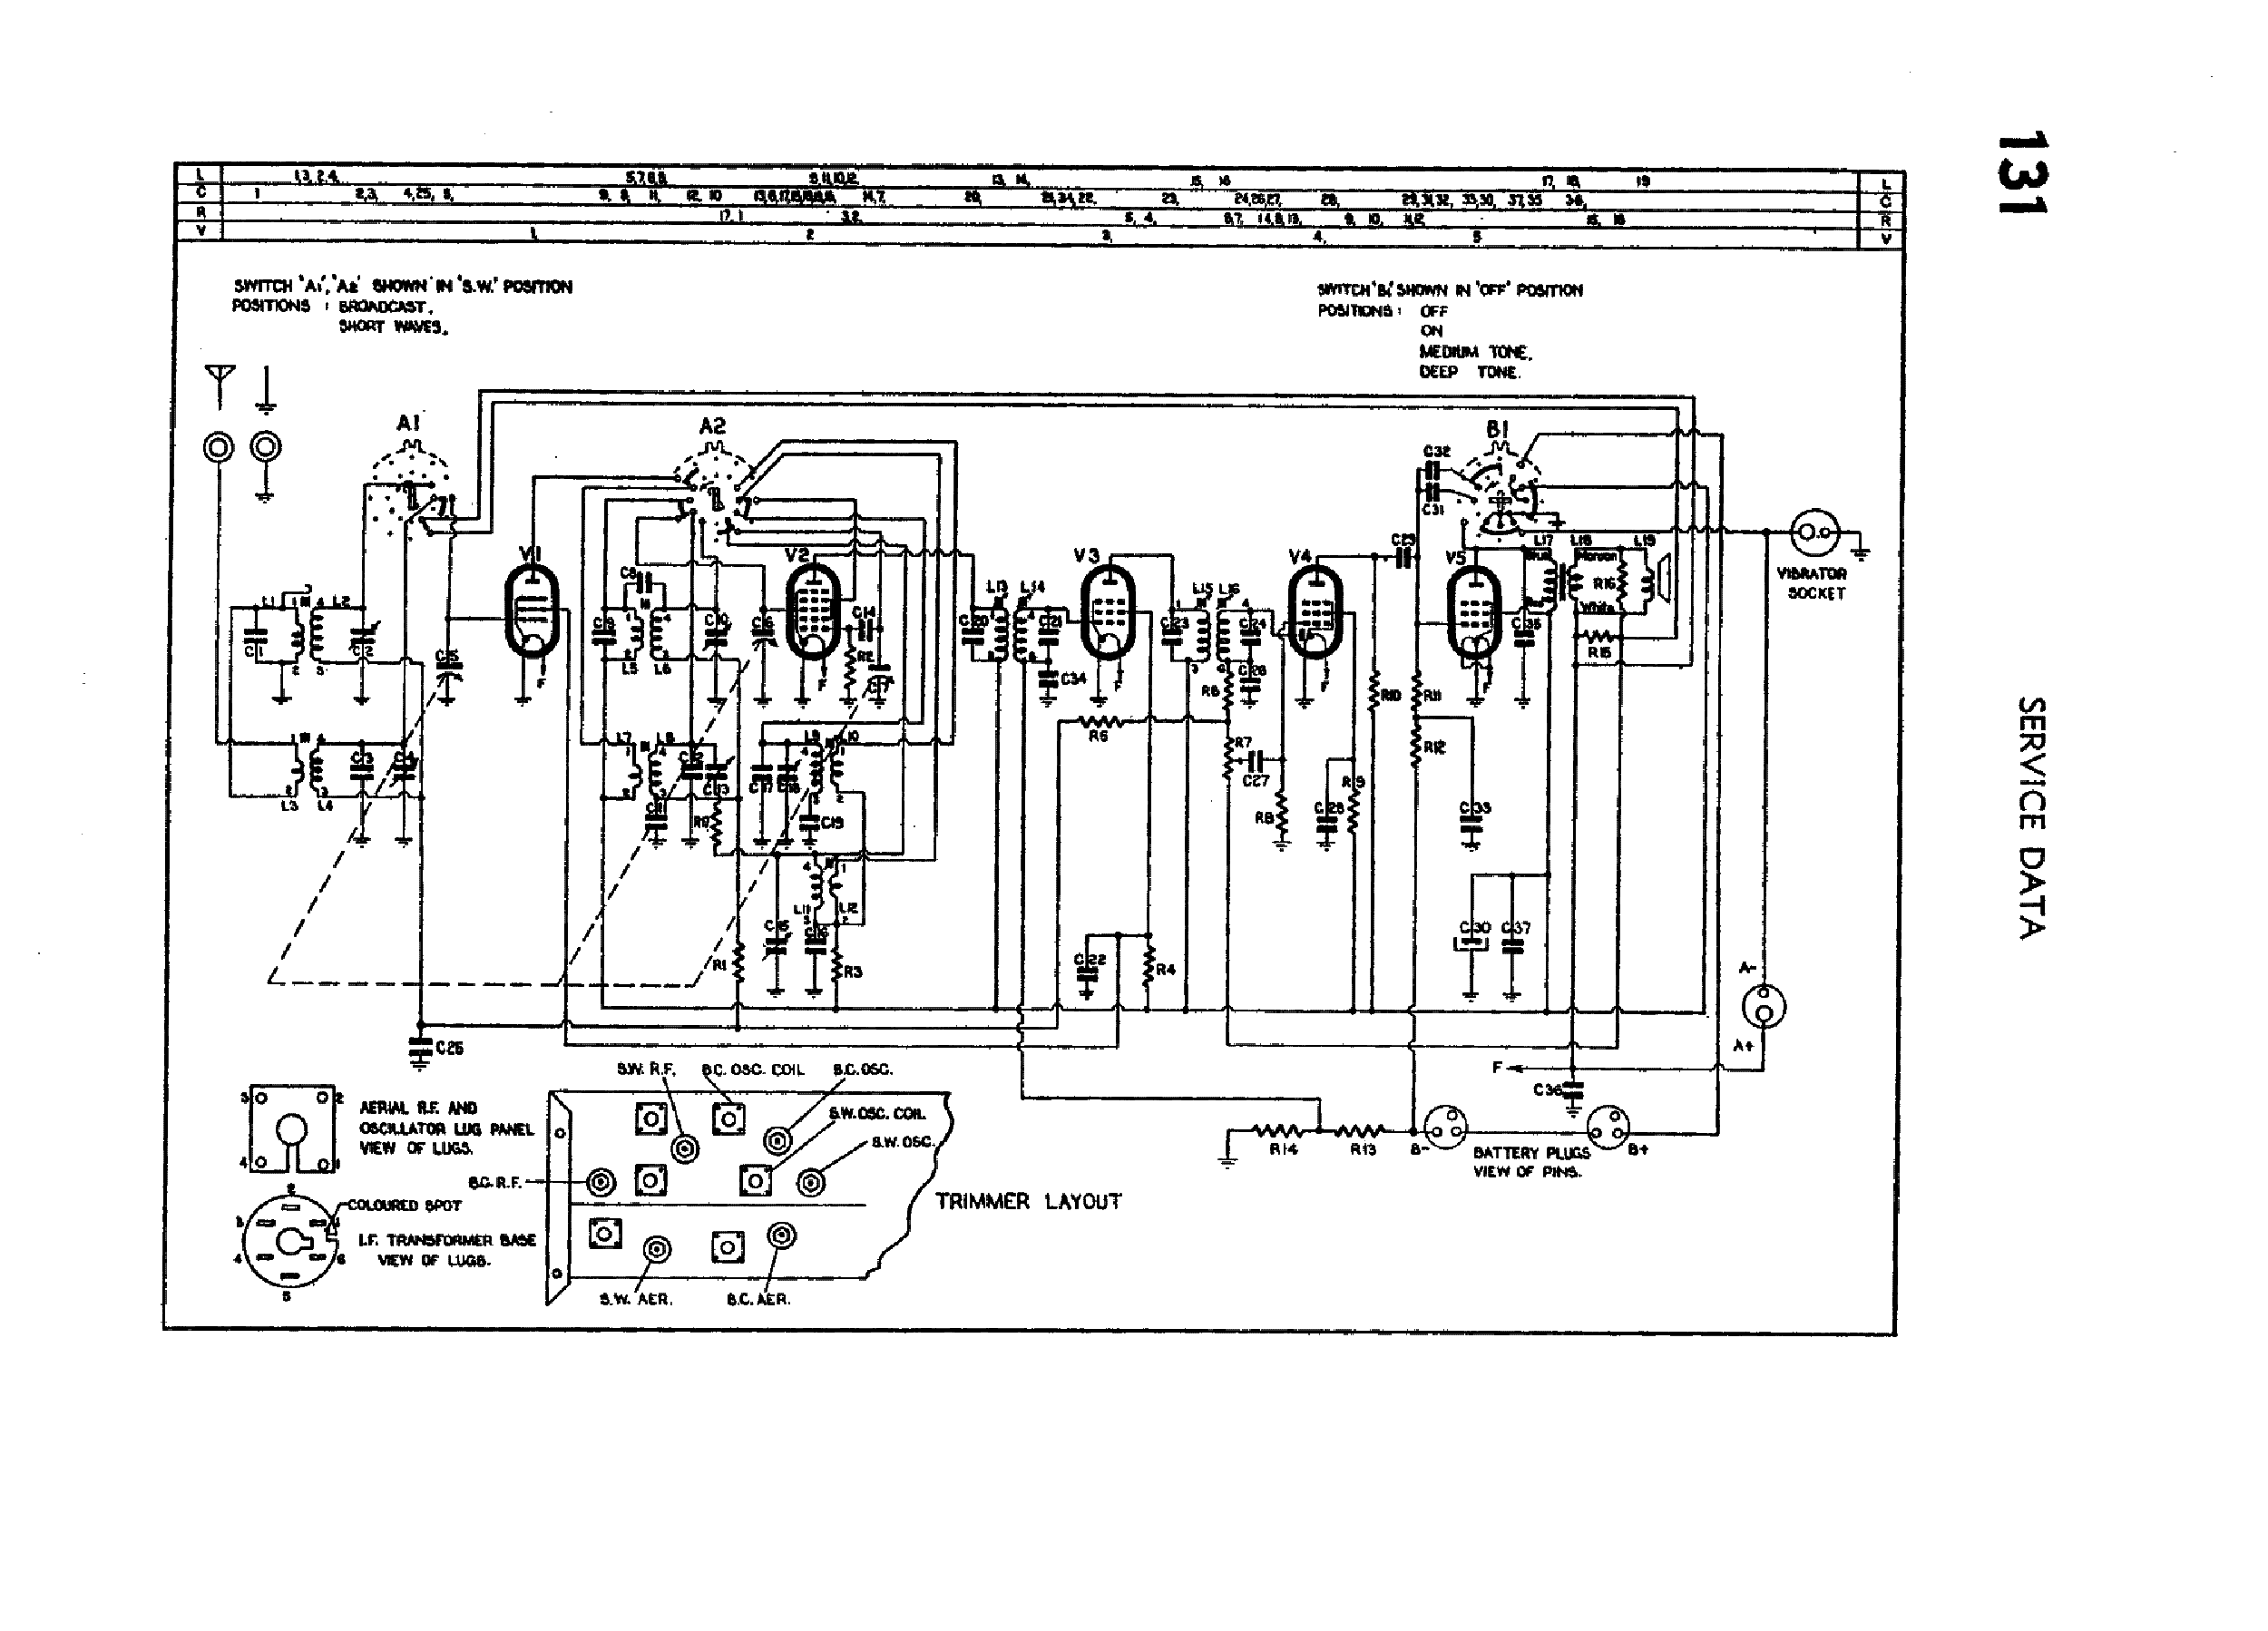 PHILIPS 131 Service Manual download, schematics, eeprom